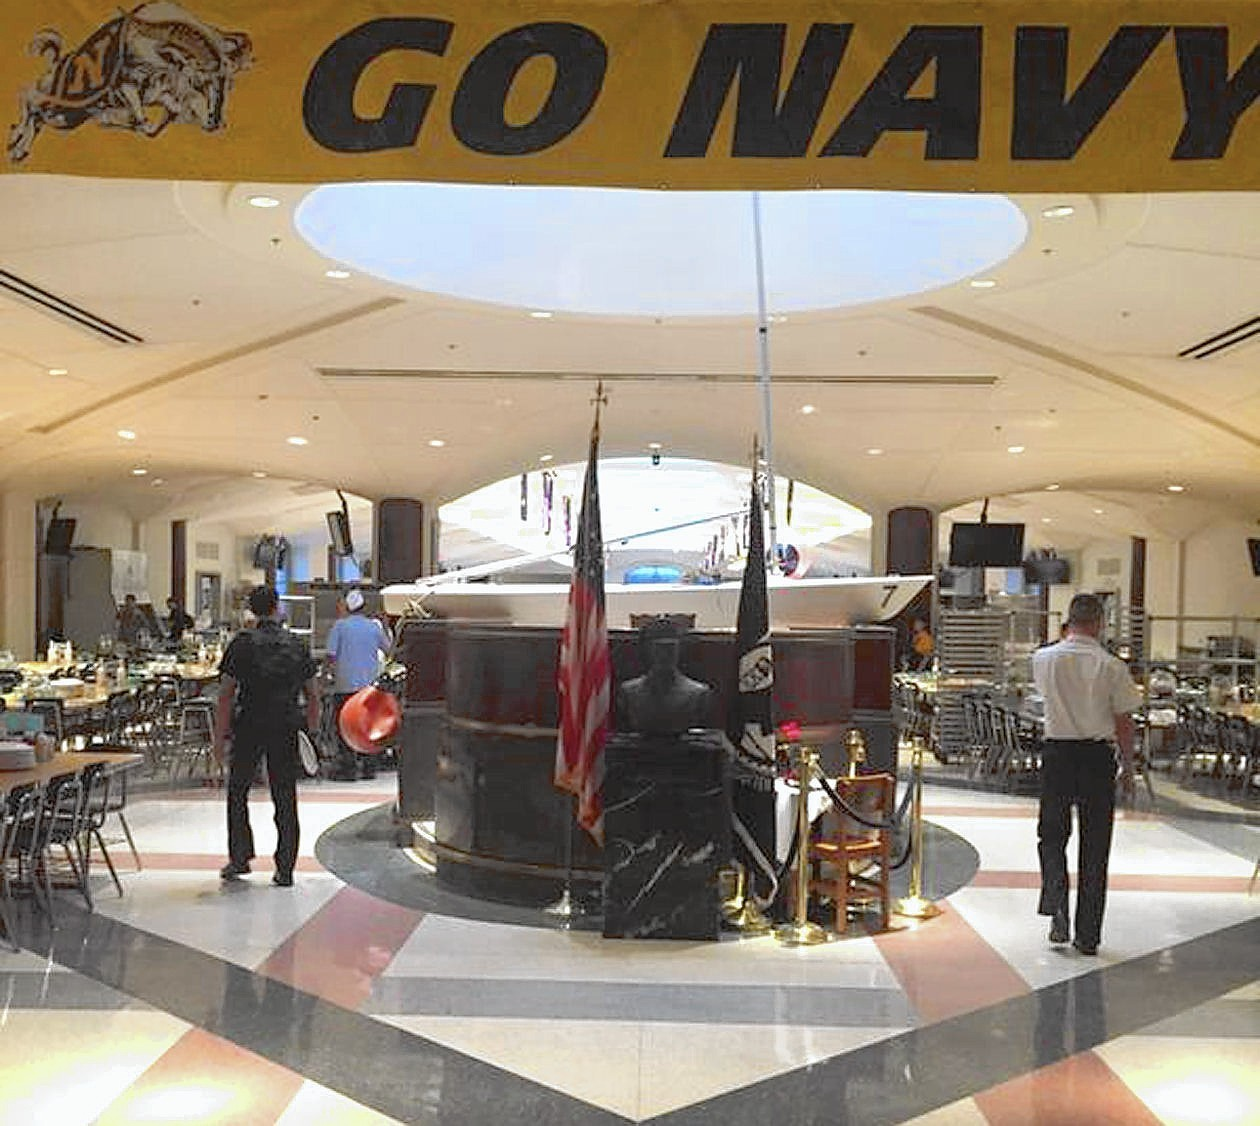 Dining Hall: Why Was A Sailboat Found In The Naval Academy Dining Hall